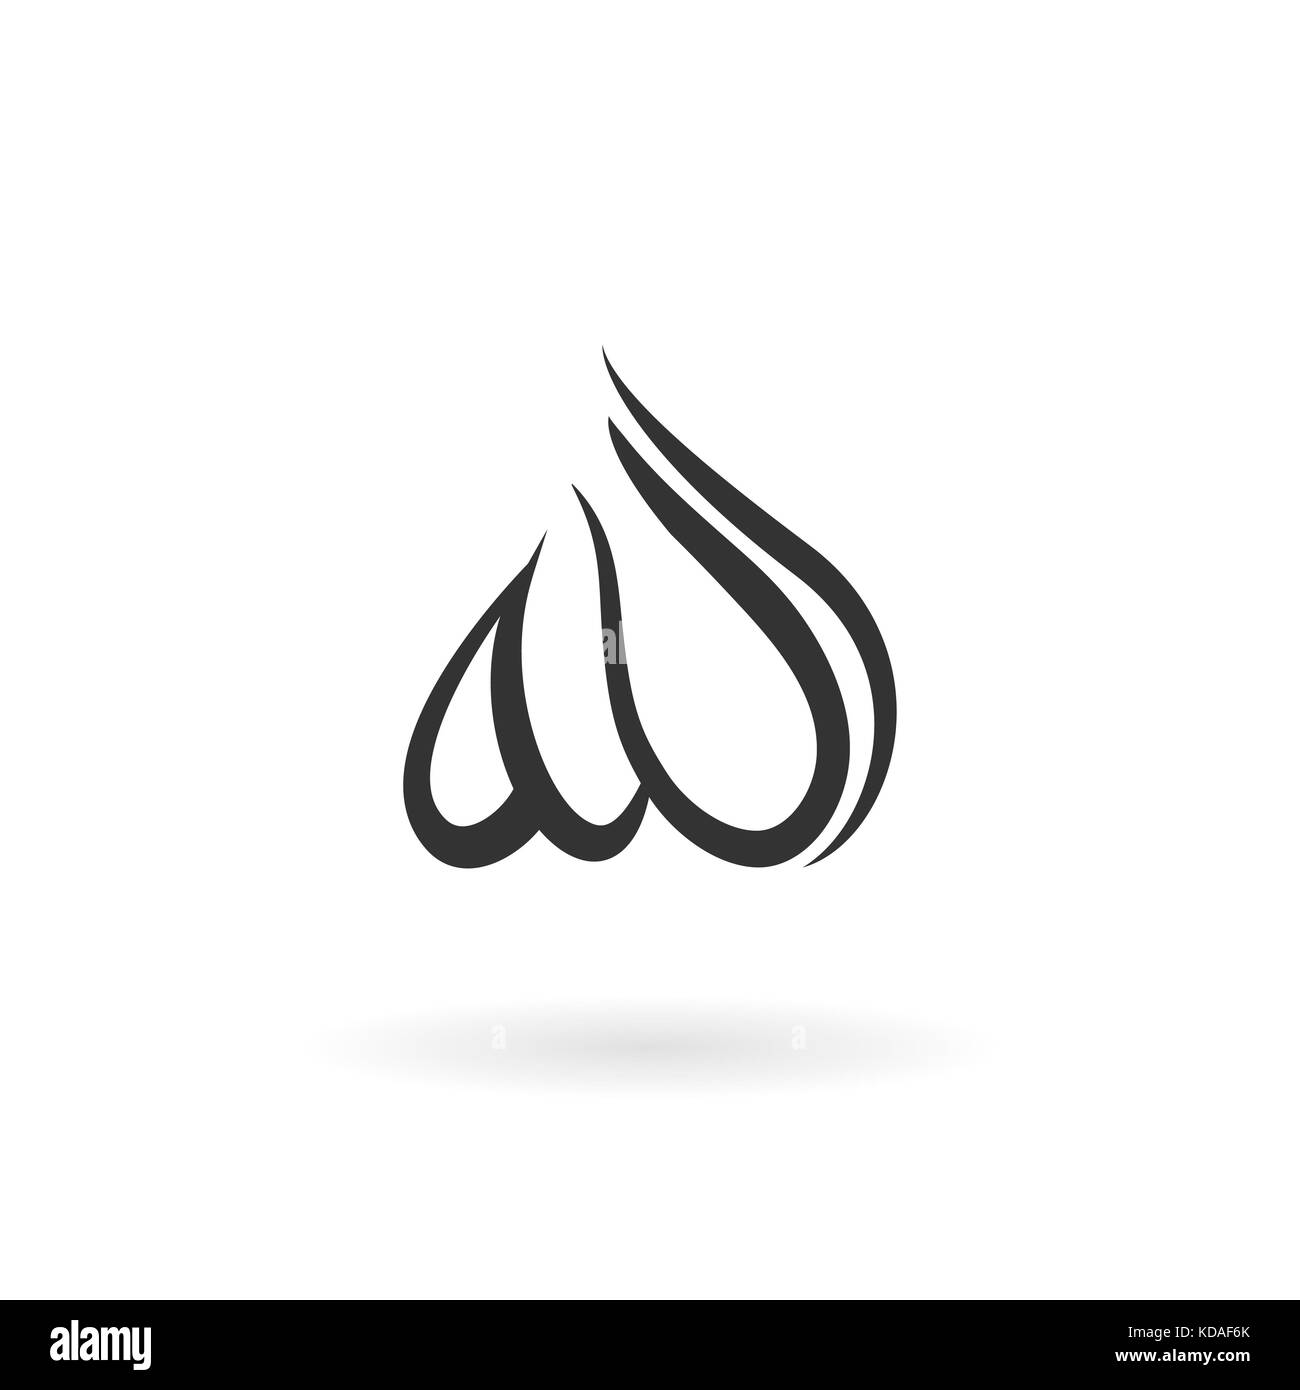 allah symbol stock photos amp allah symbol stock images alamy